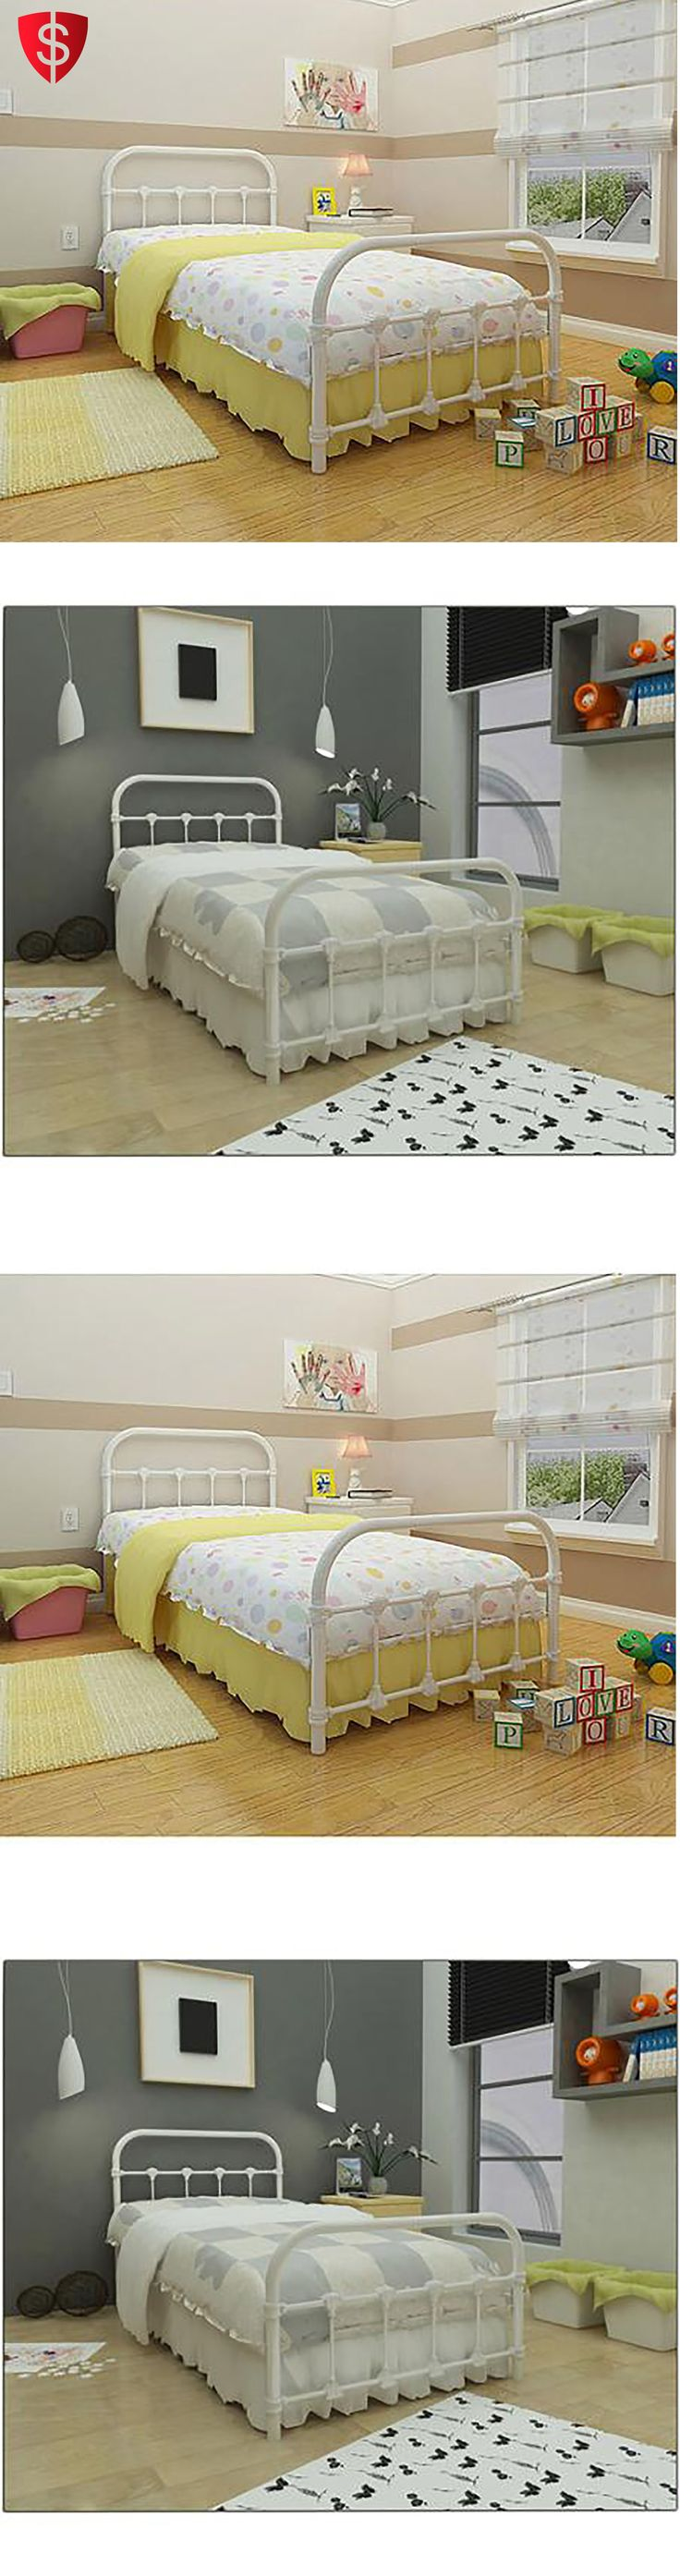 Bedding: White Metal Twin Size Bed Frame Bedroom Furniture Antique Victorian Steel BUY IT NOW ONLY: $165.95